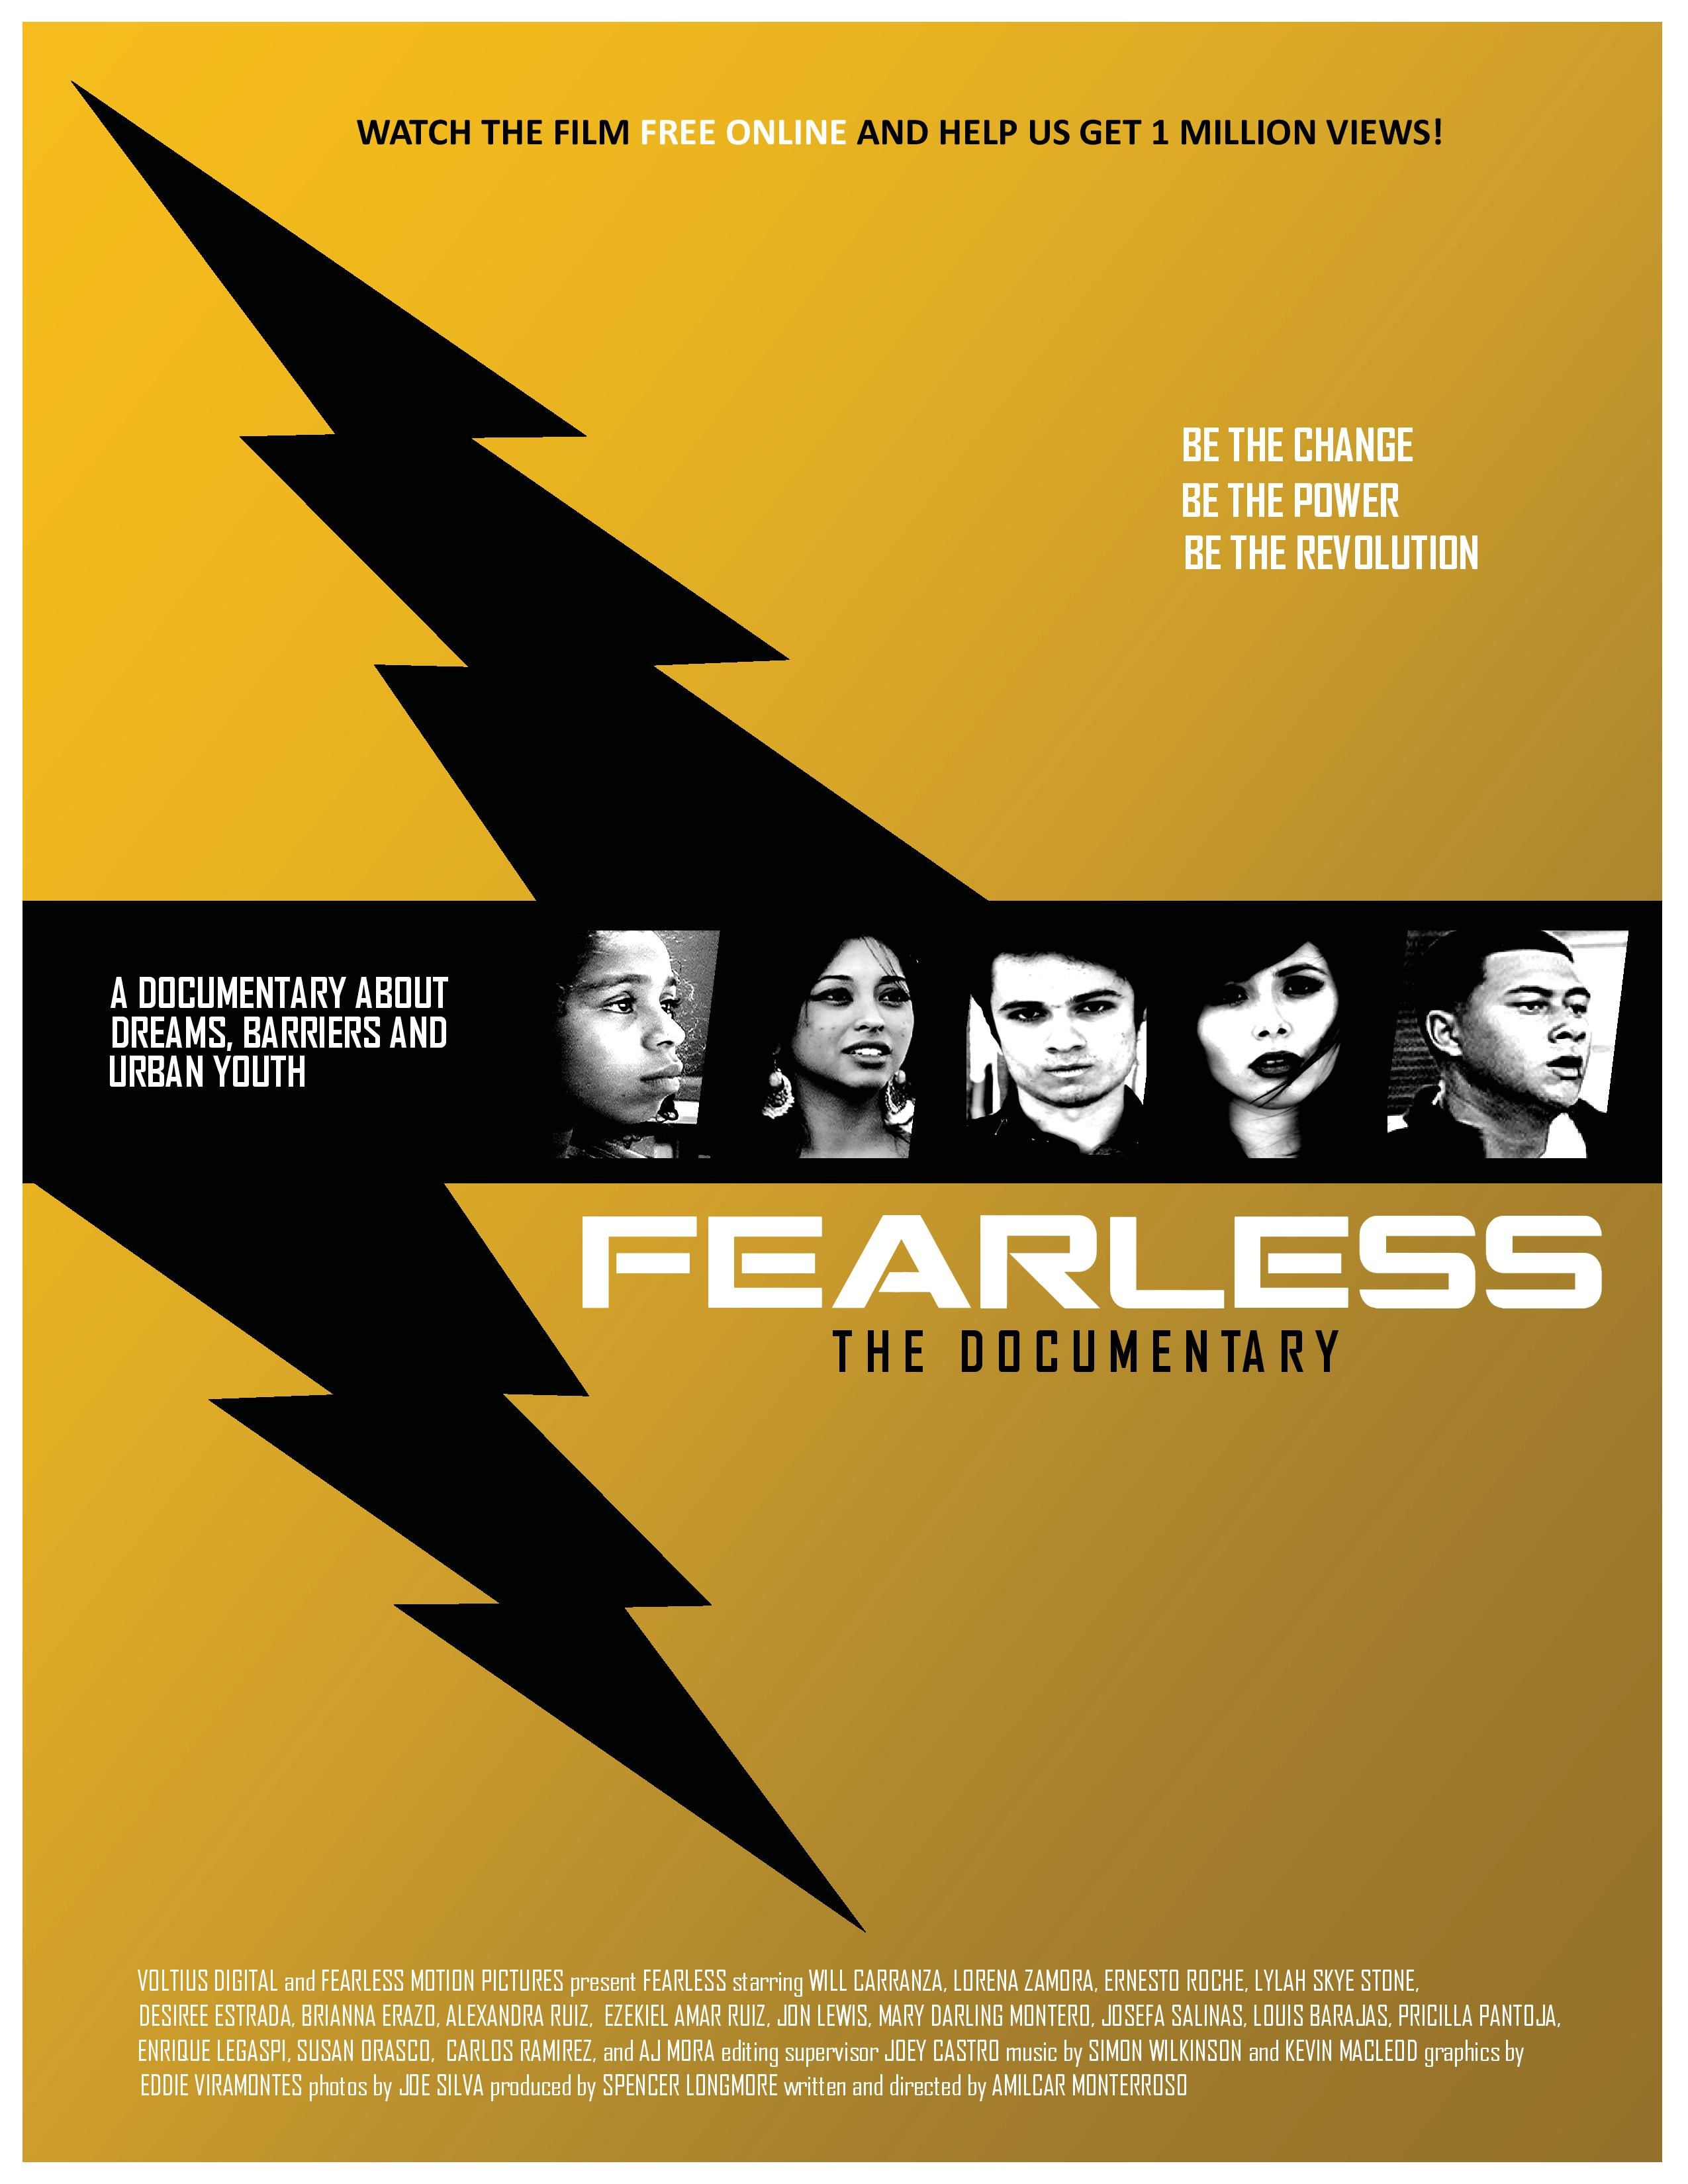 Fearless: The Documentary